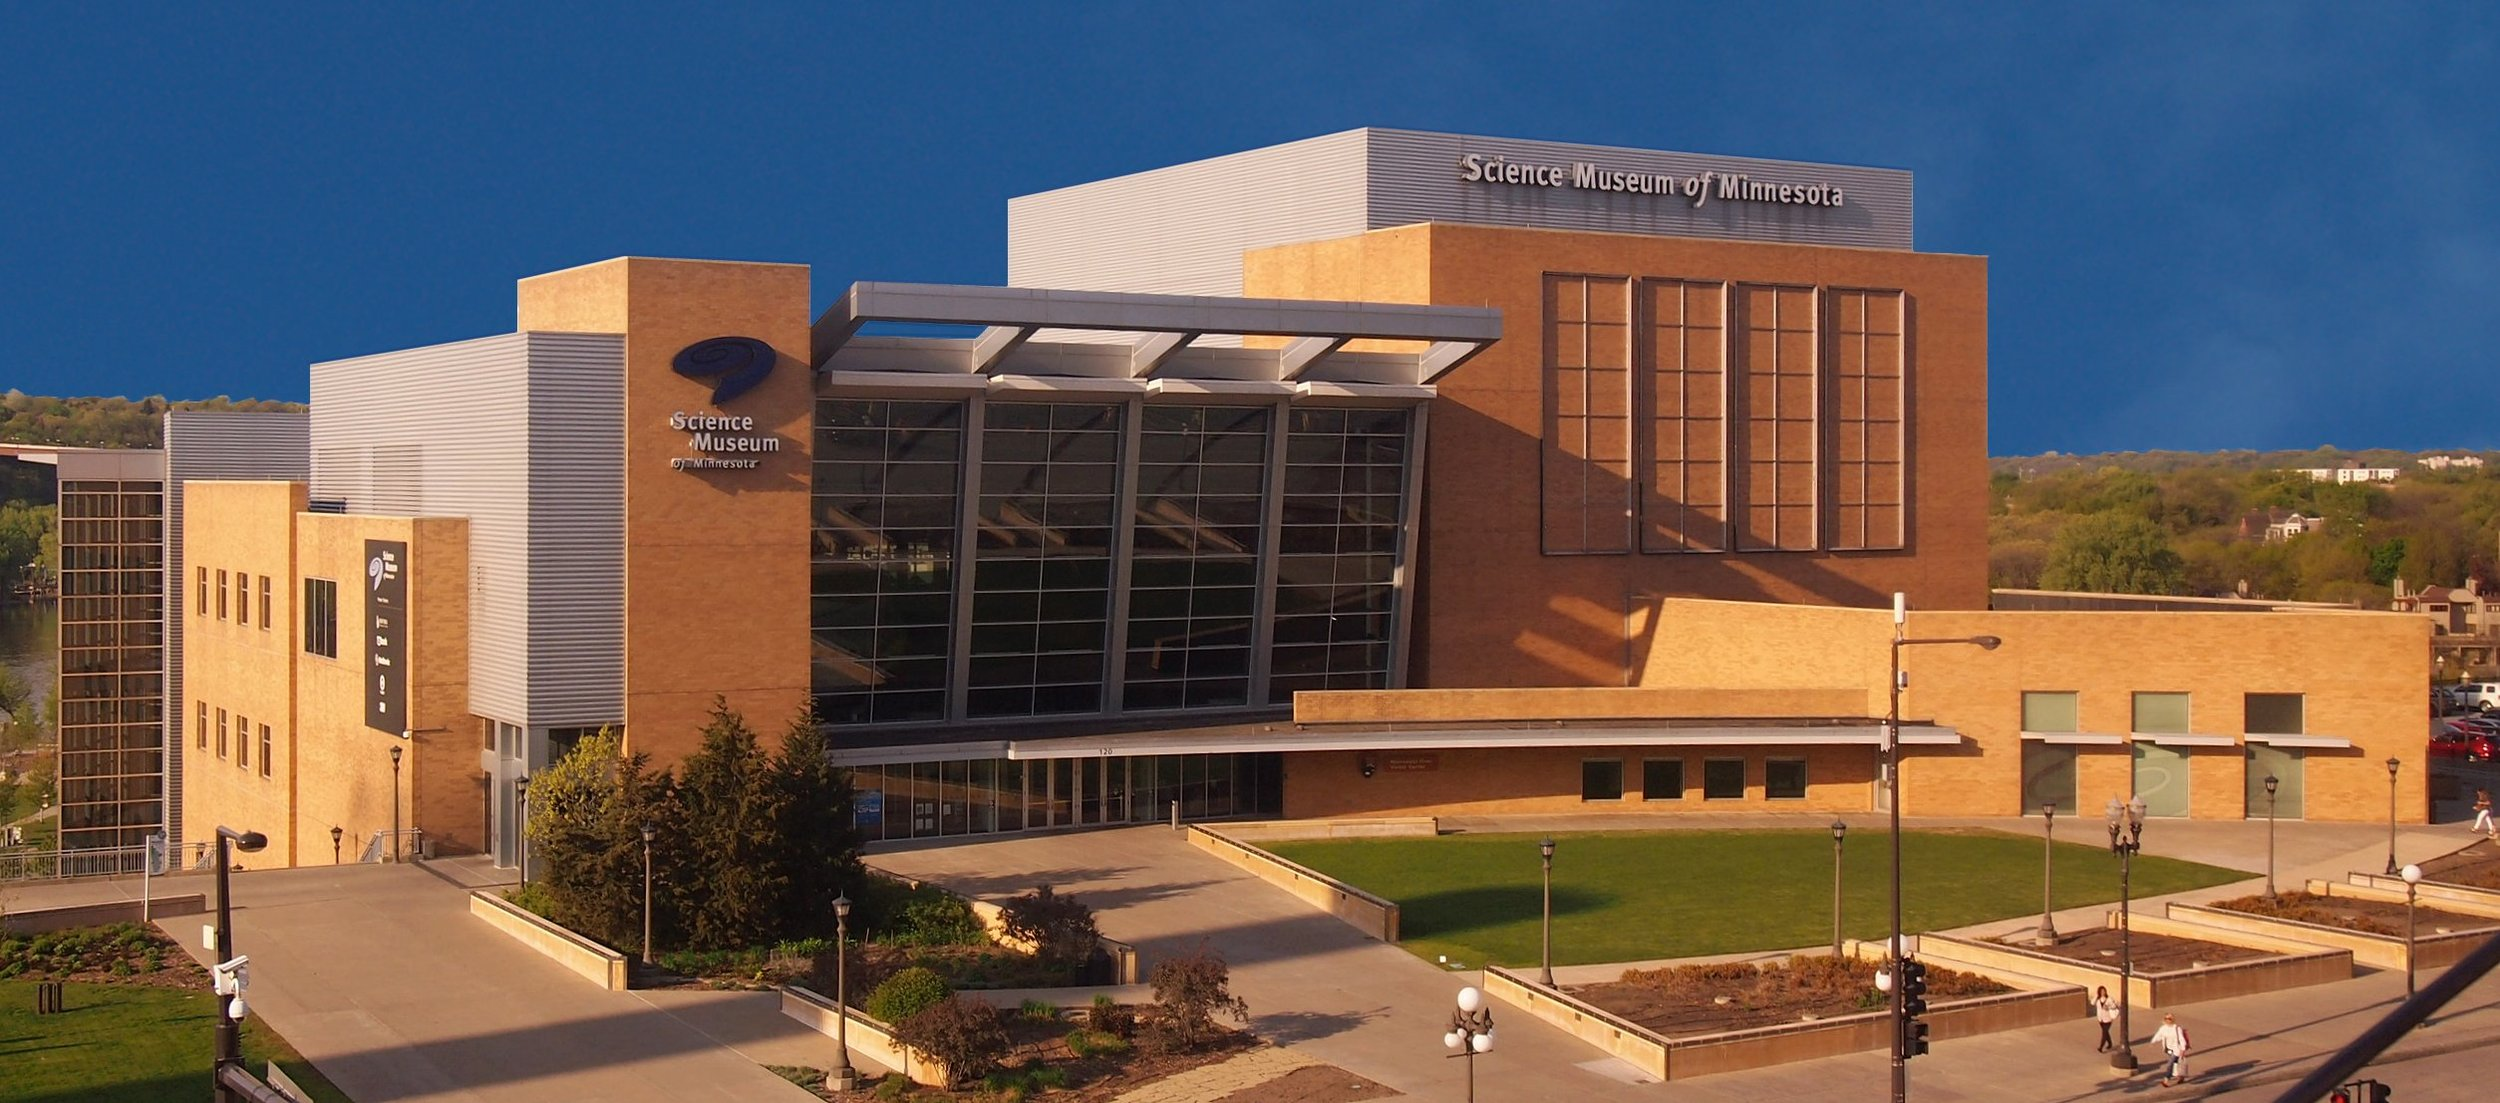 Photo of Science Museum of Minnesota By McGhiever - Own work, CC BY-SA 4.0, https://commons.wikimedia.org/w/index.php?curid=48588660